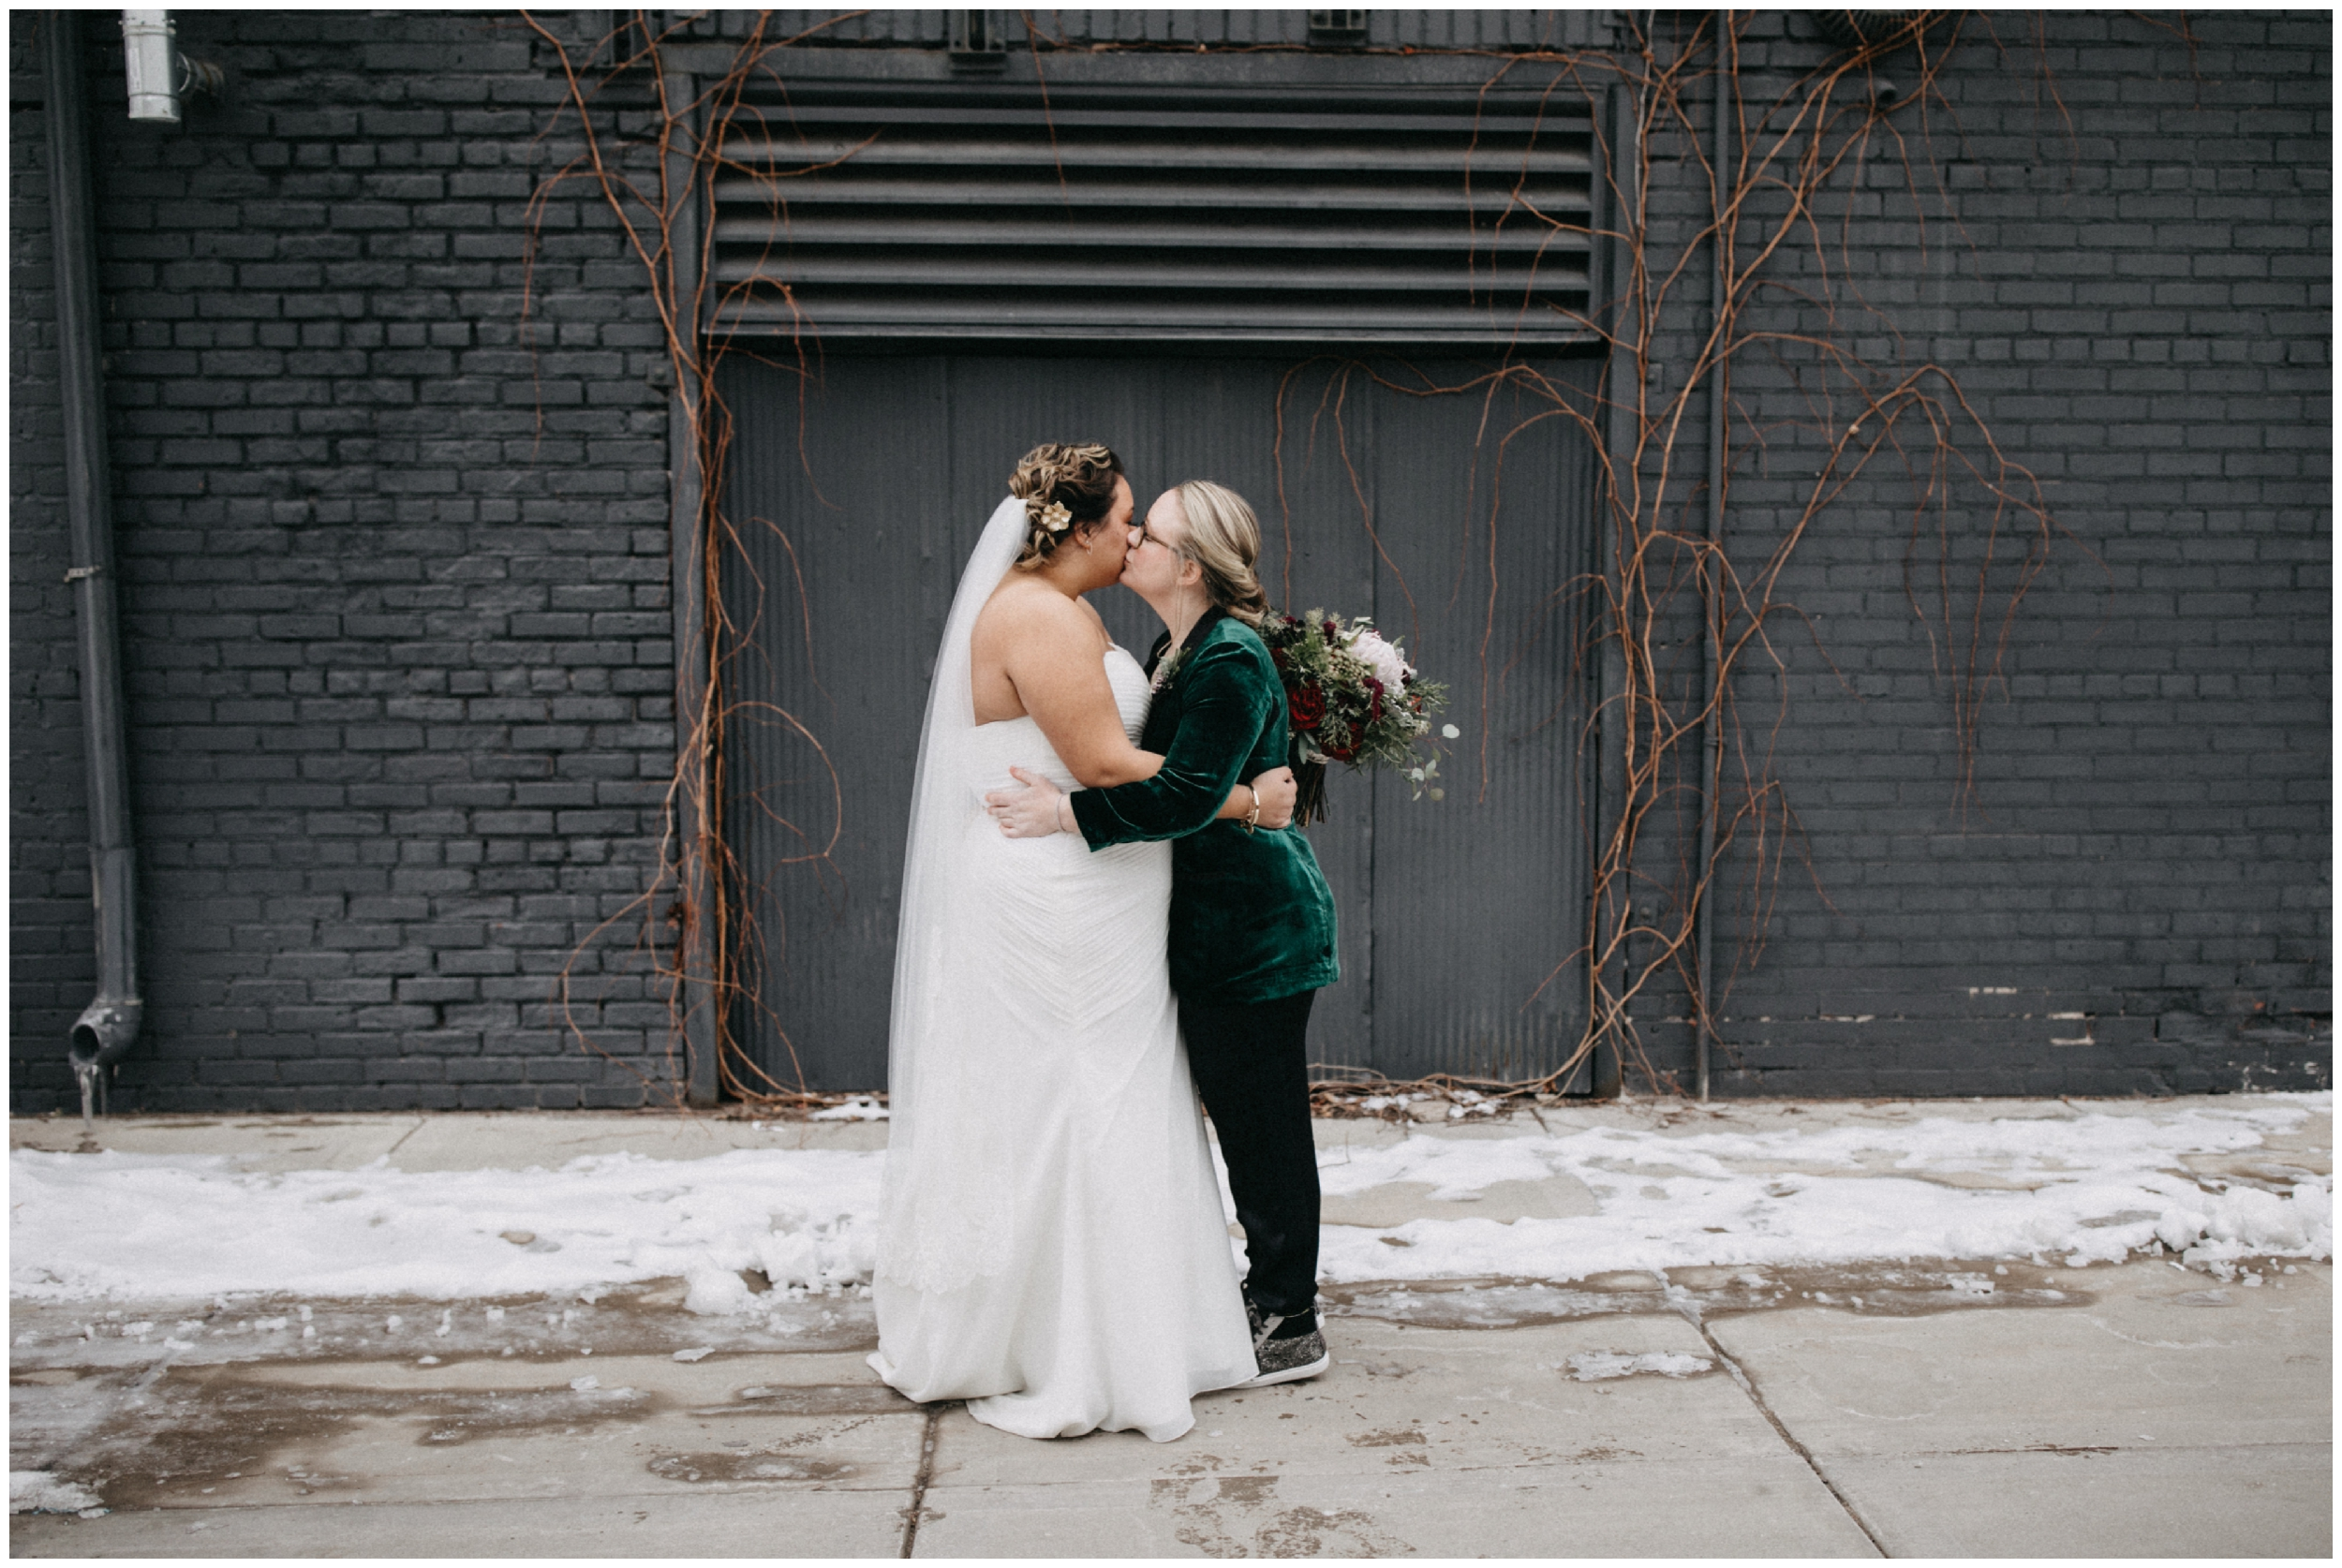 Industrial chic winter wedding at Paikka